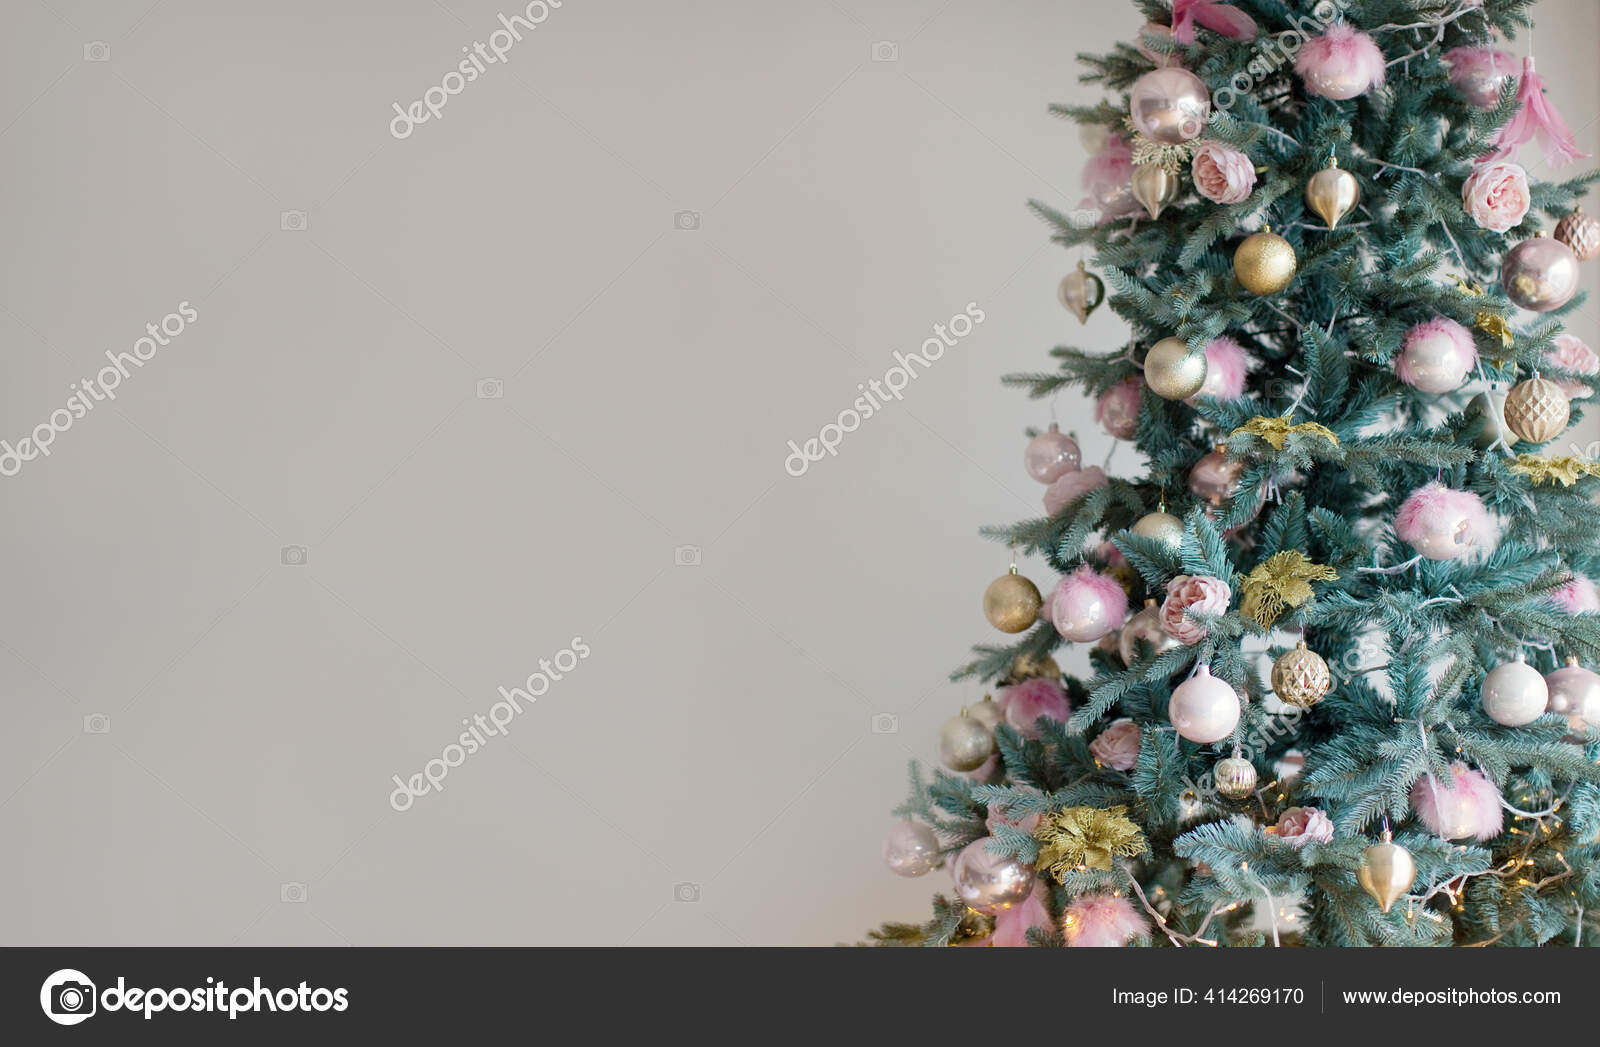 Christmas Banner Christmas Tree Christmas Tree Lights Pink Golden Decorations Stock Photo C Oksana Nazarchuk 414269170